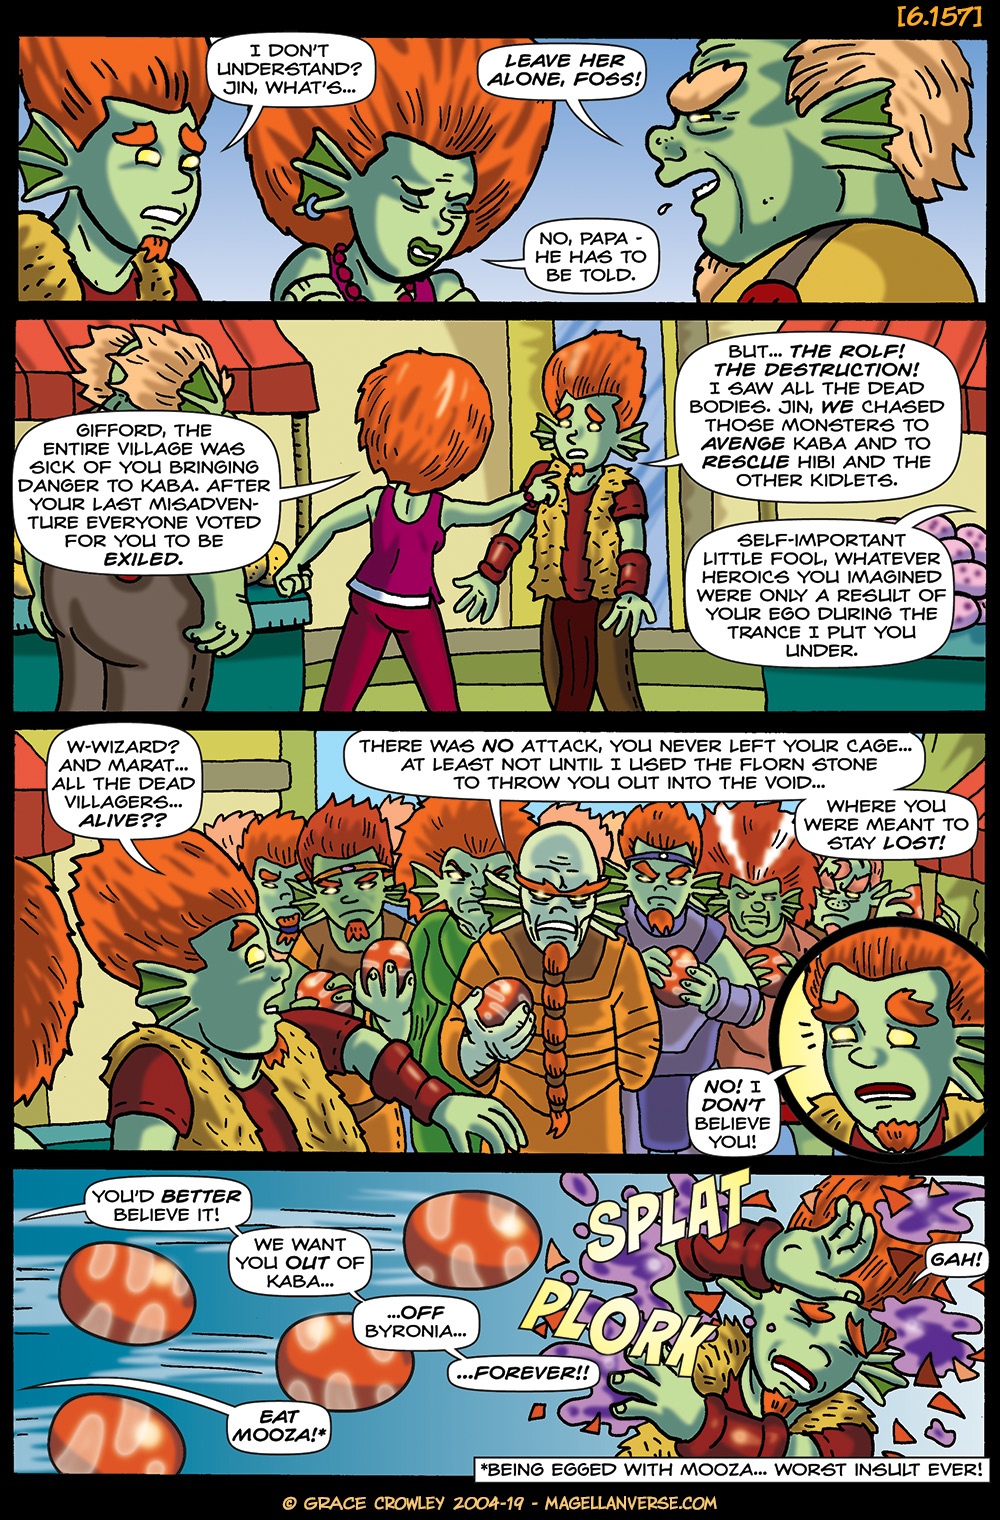 Page 6.157